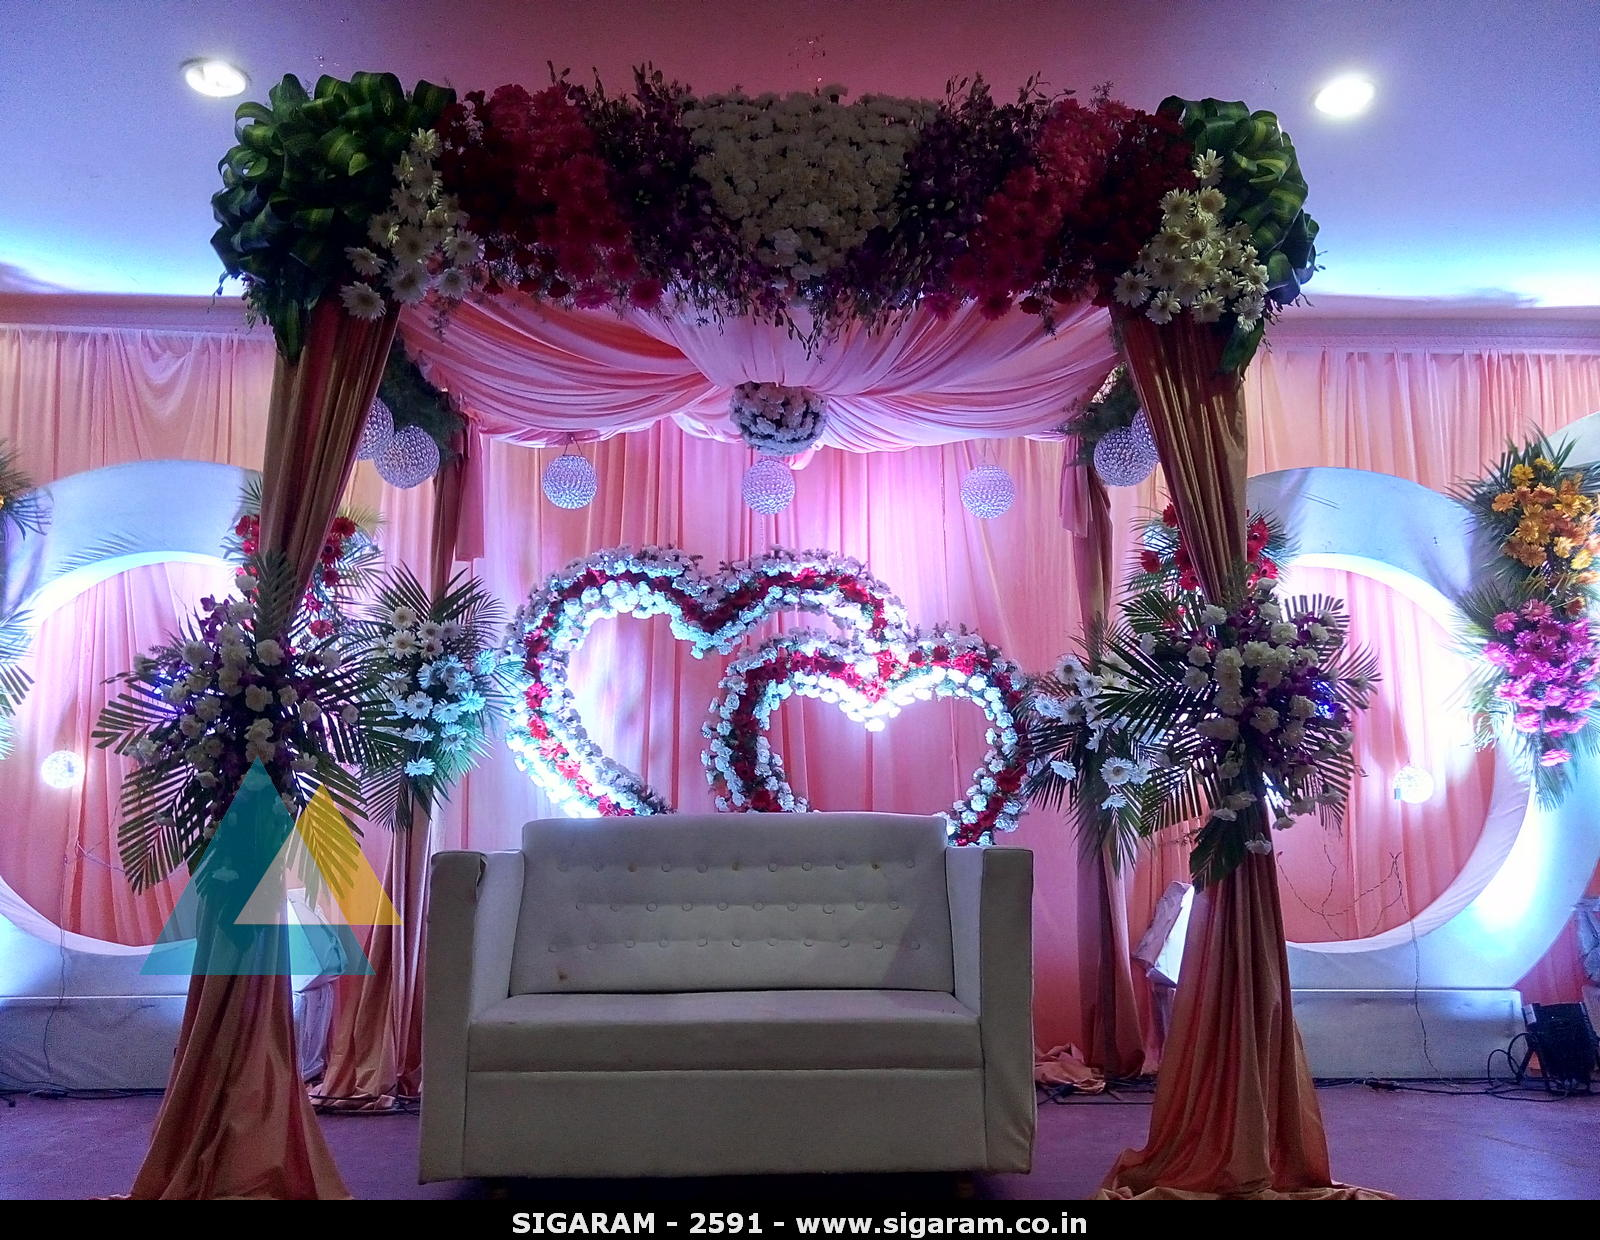 Wedding gallery sigaram wedding decorators for Home decorations images